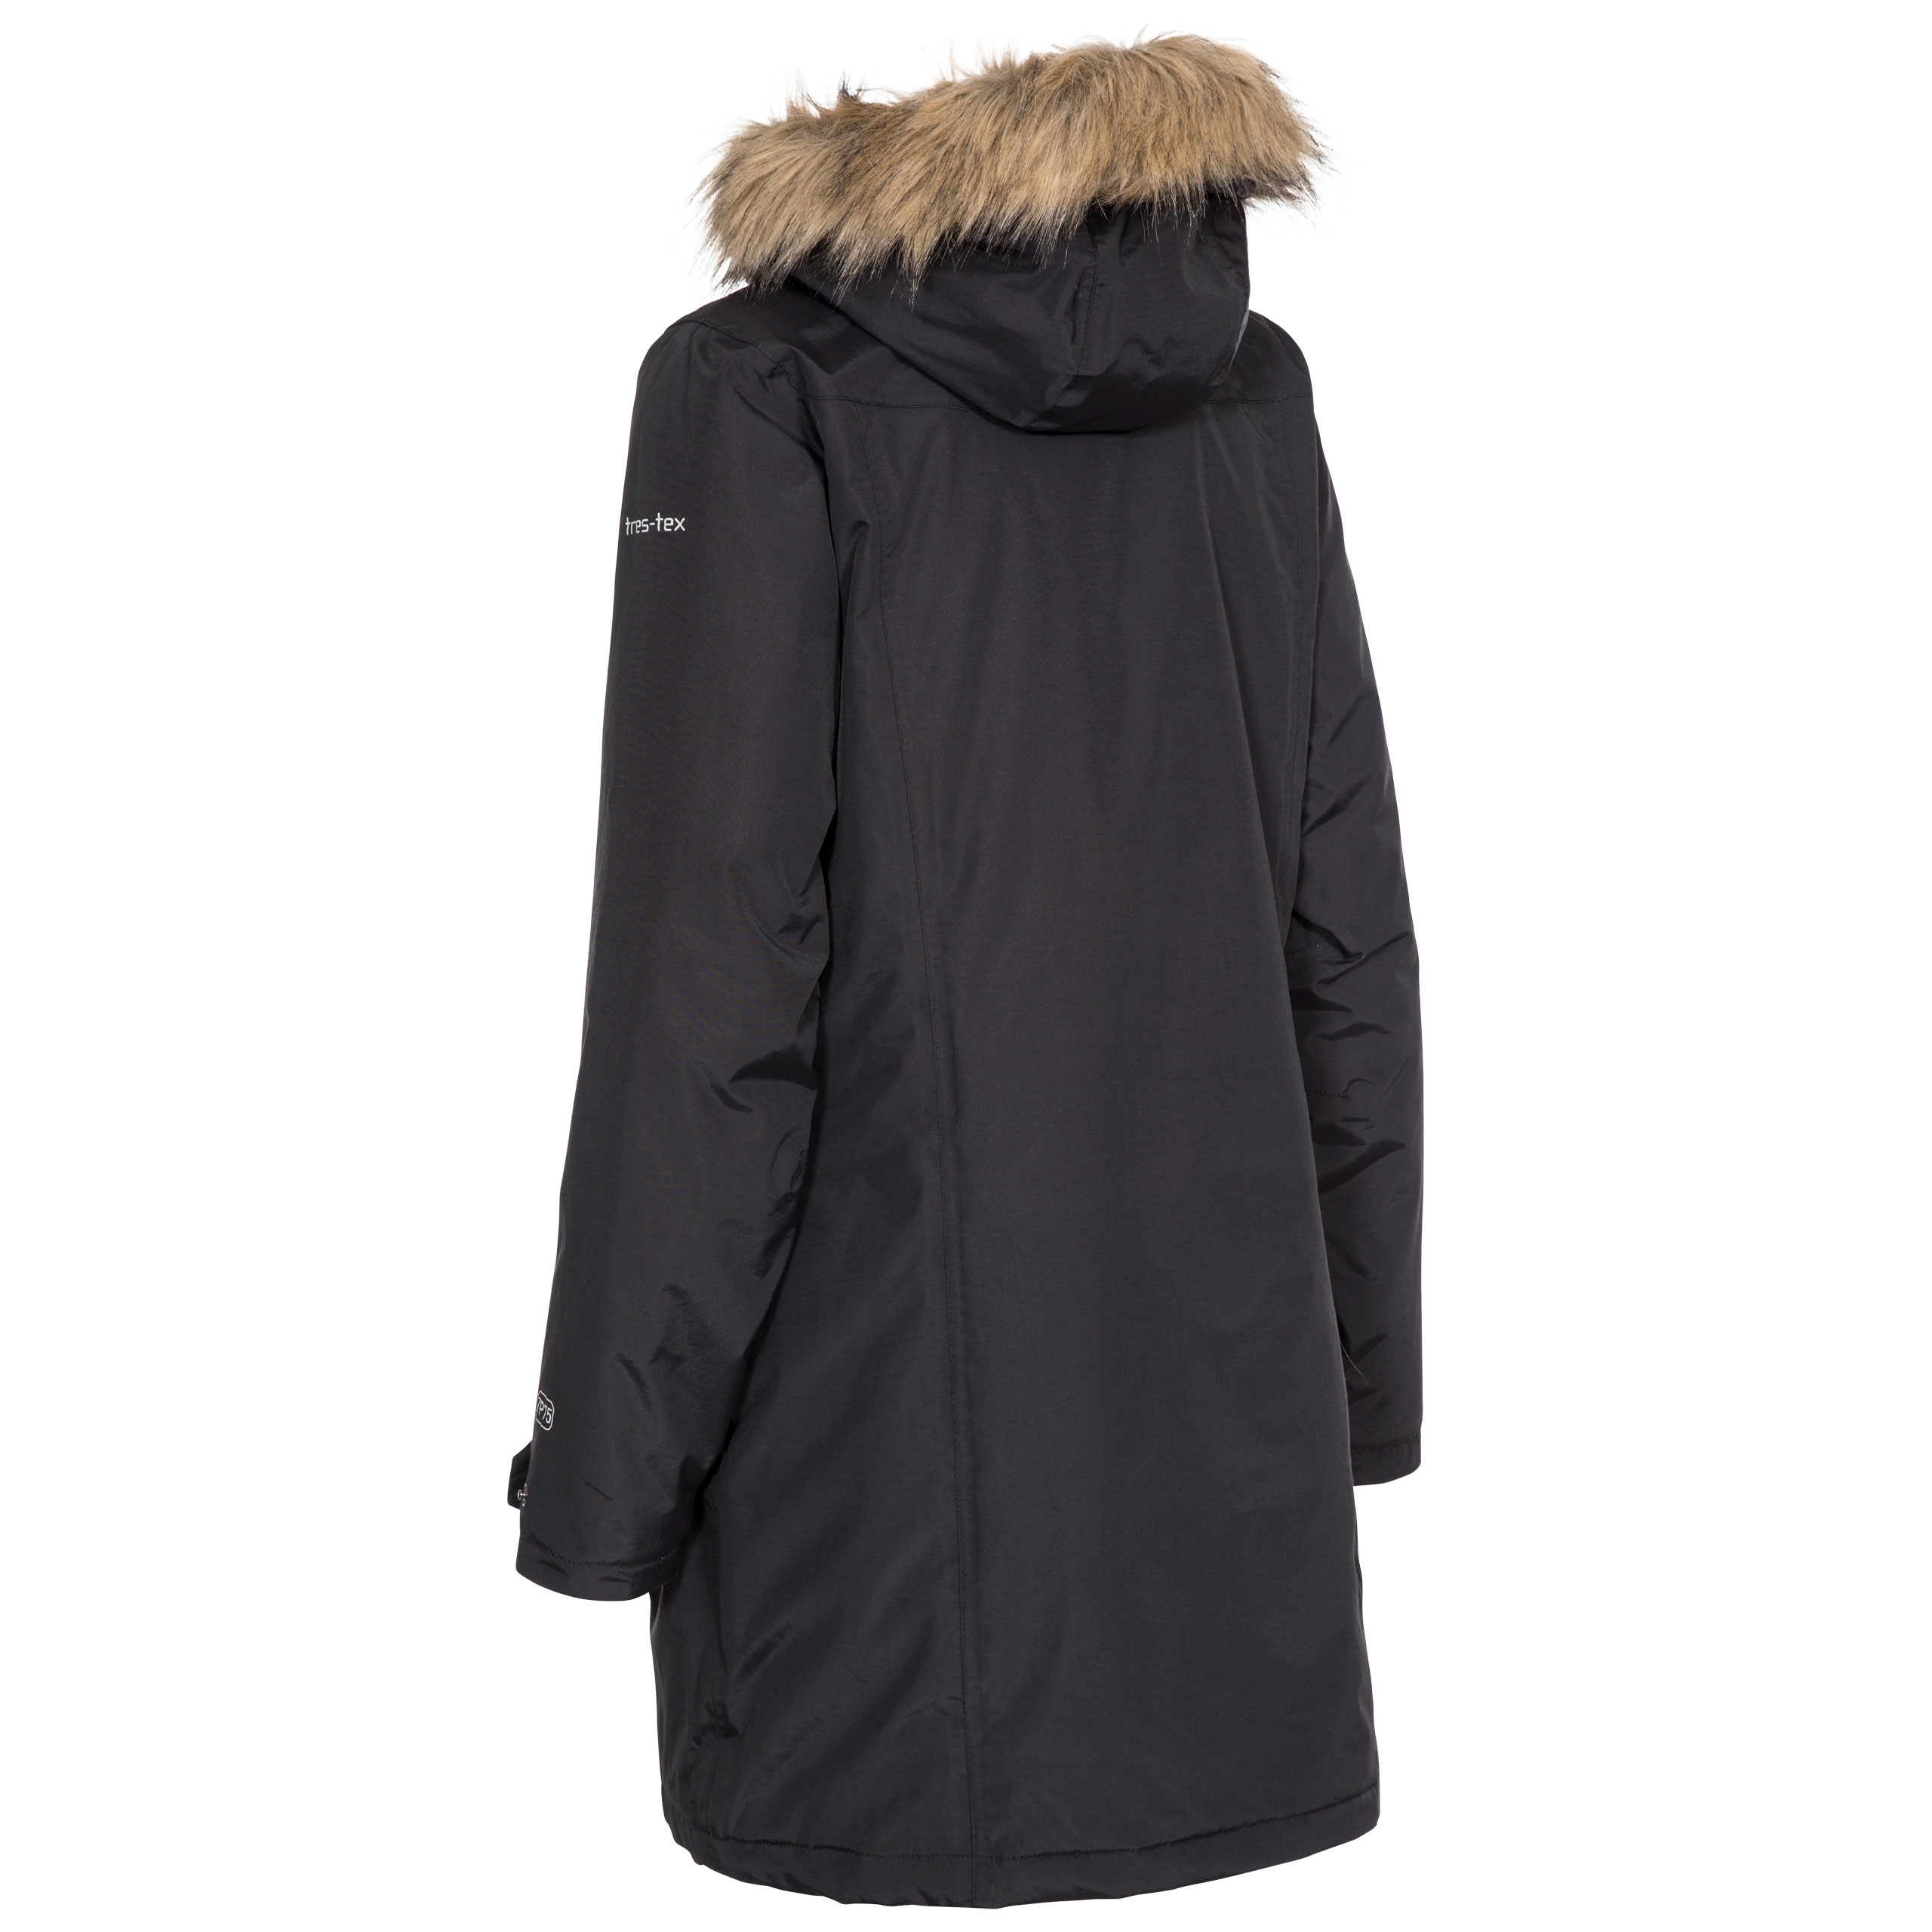 Trespass-Womens-Parka-Jacket-Waterproof-Longline-Winter-Warm-Coat thumbnail 7